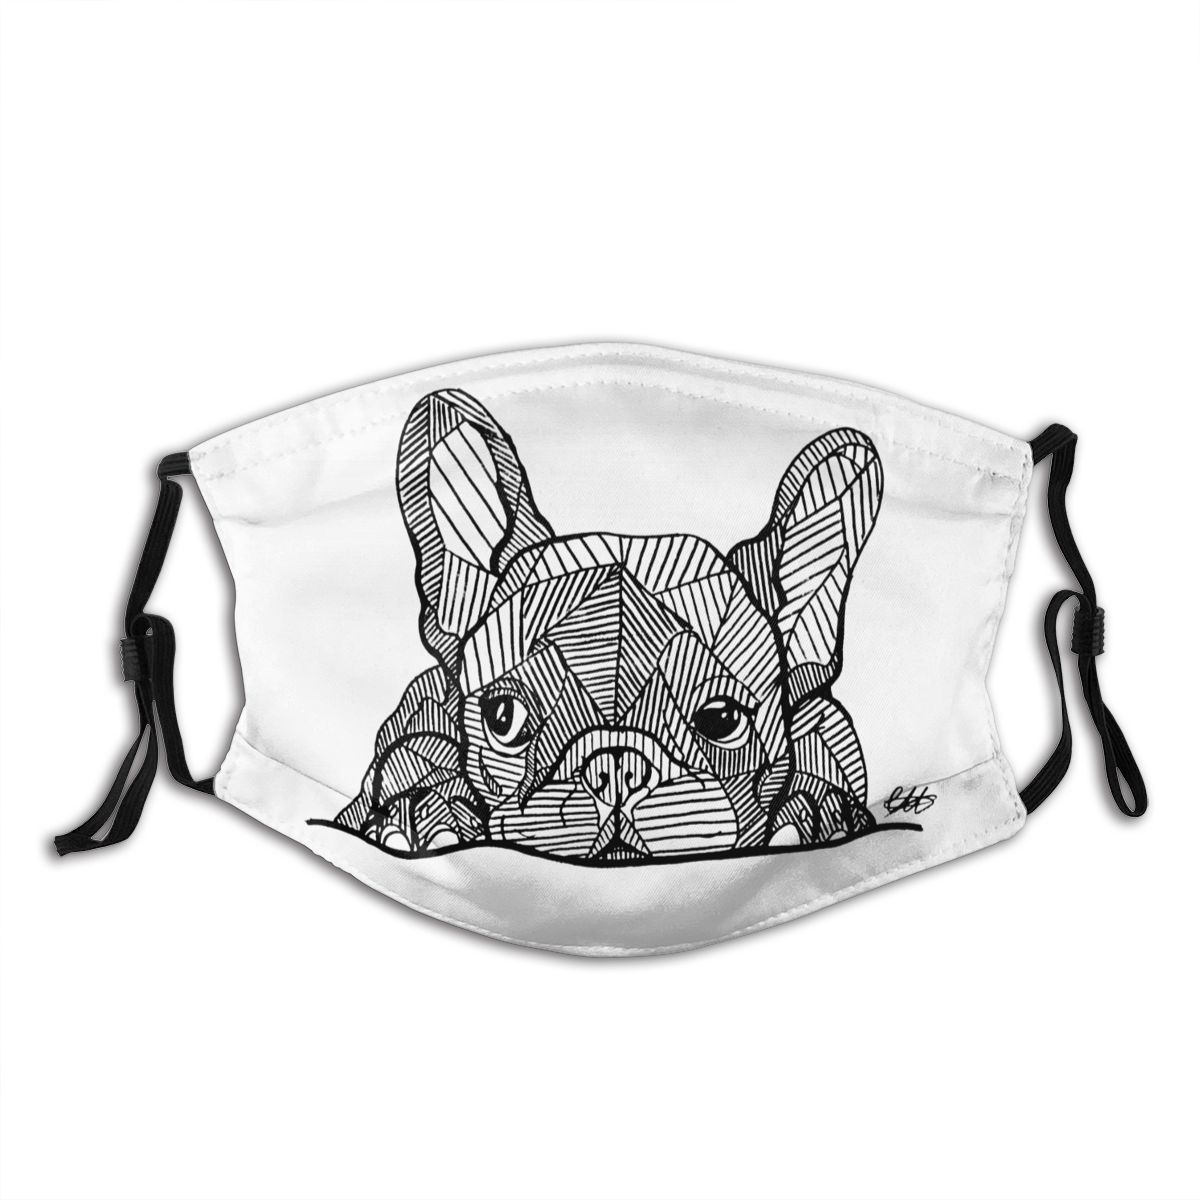 French Bulldog Mouth Face Mask French Bulldog Puppy Facial Mask Cool Fashion With 2 Filters For Adult